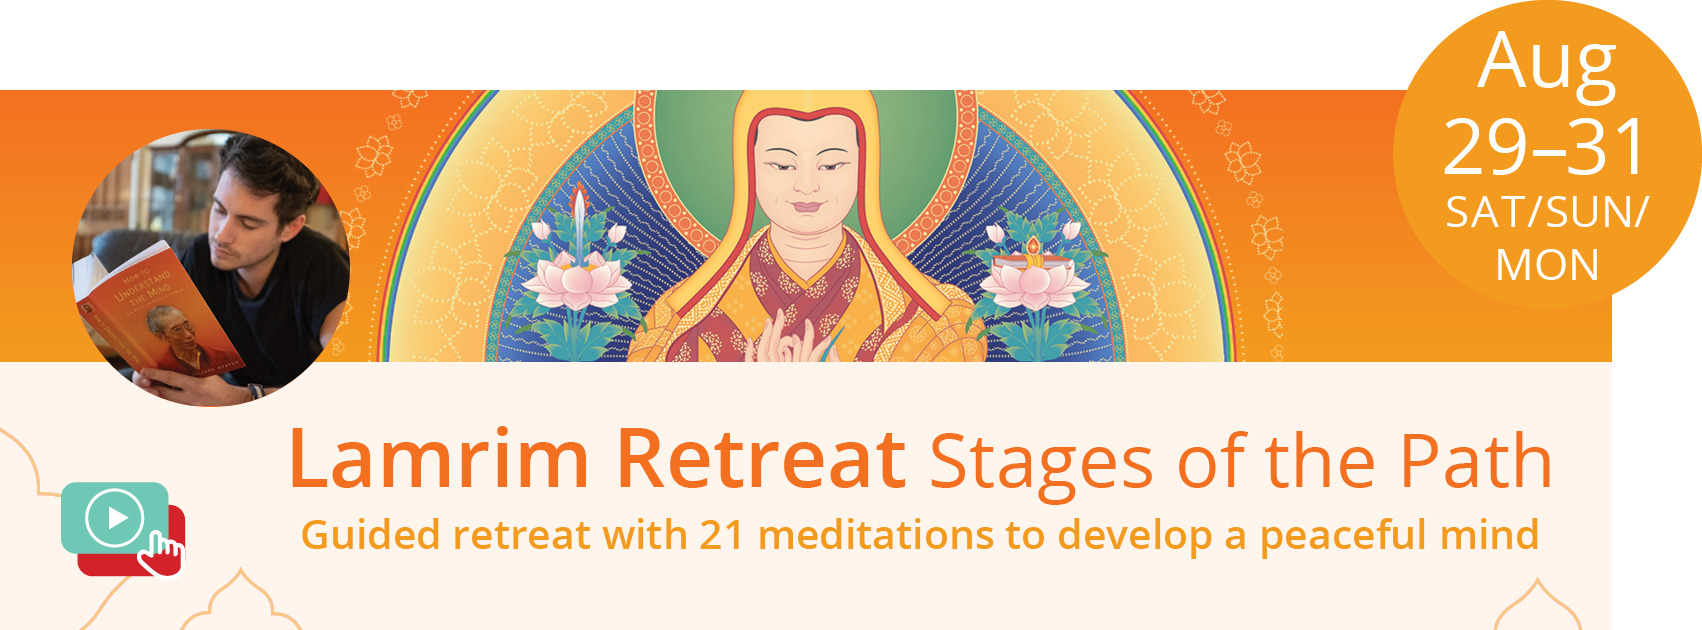 Lamrim Retreat–Stages of the Path